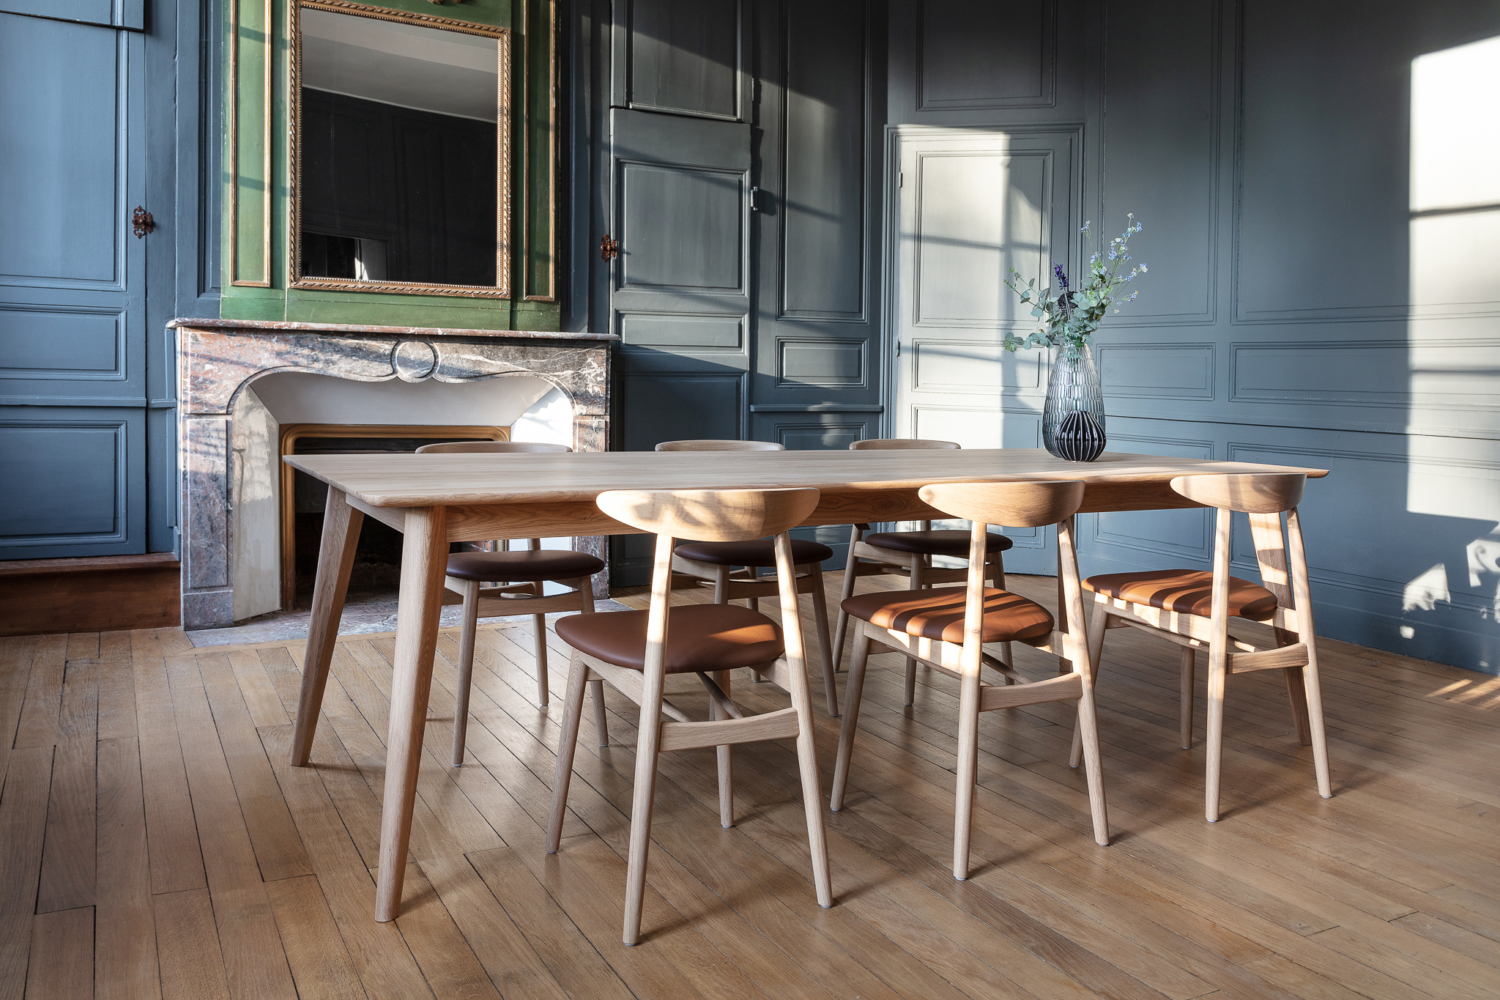 table de repas dan-teo-dining-chair-upholstered-dan